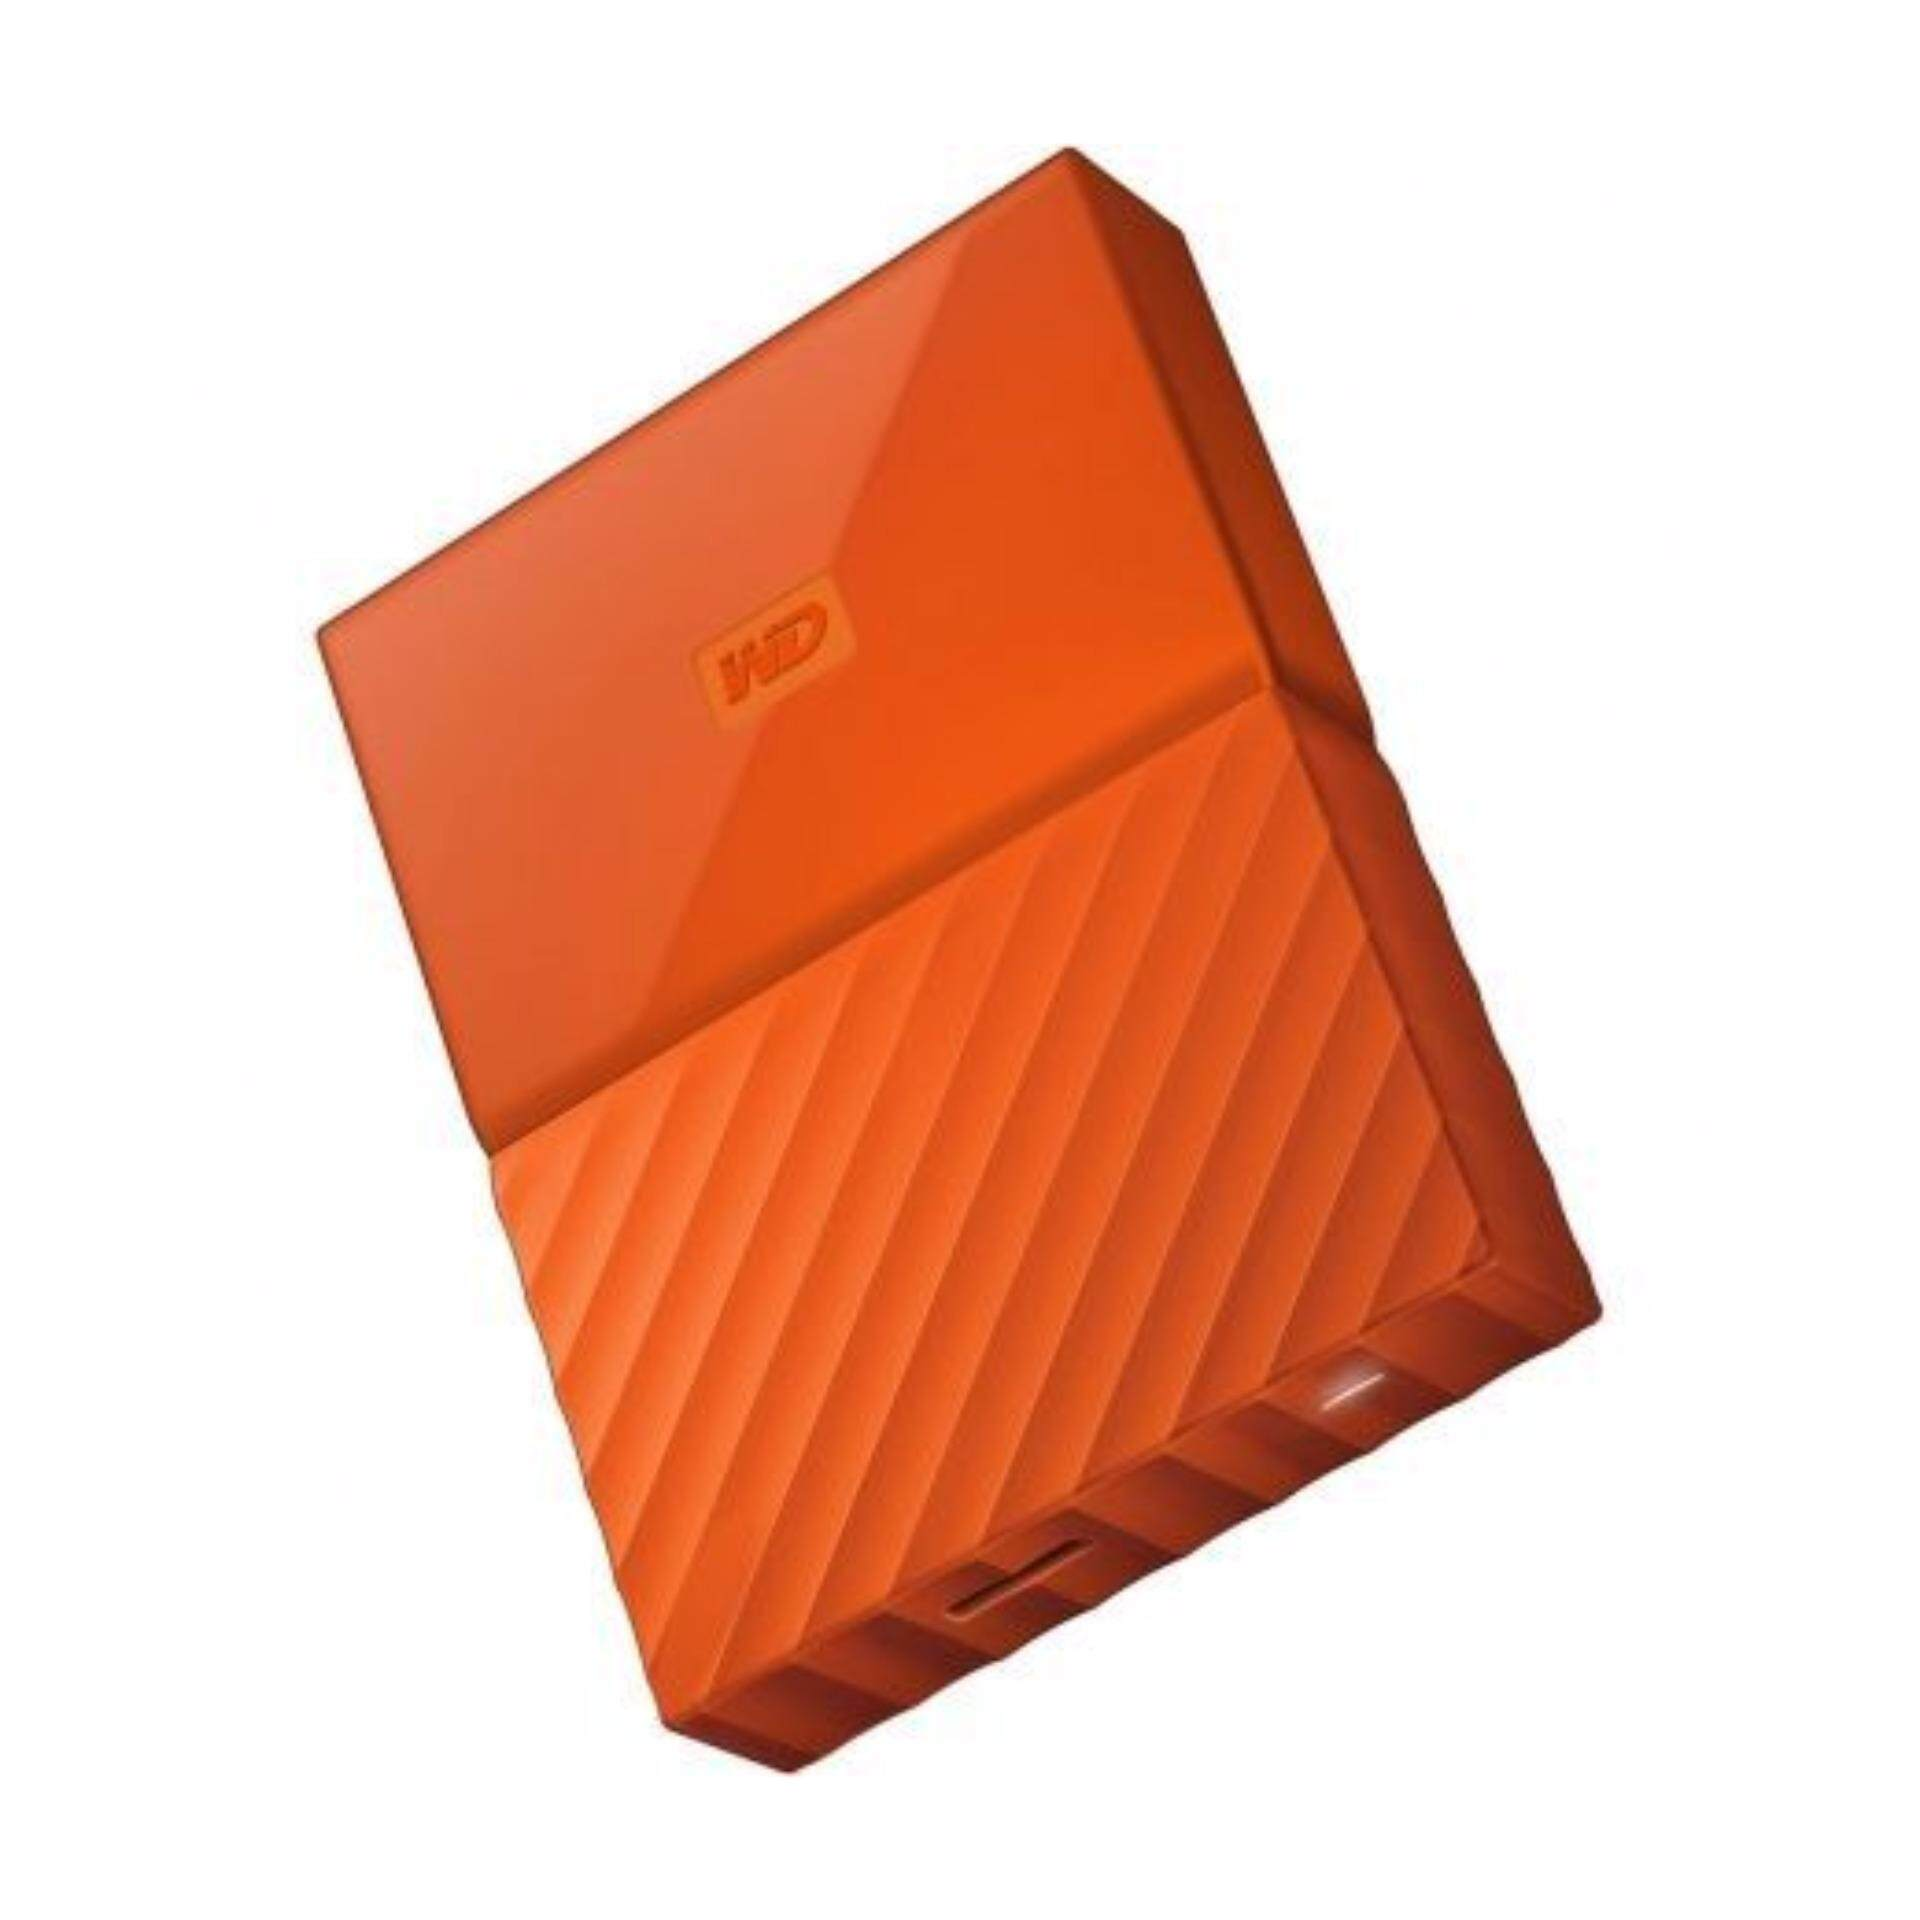 WD Western Digital HDD My Passport ( 1TB ) Portable Storage External Hard Disk Drive (ORIGINAL/ READY STOCK) - ORANGE